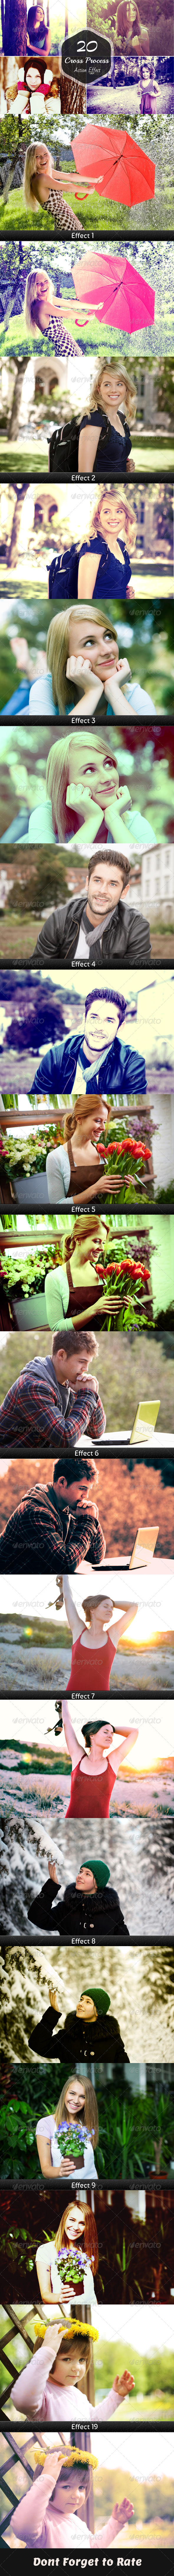 GraphicRiver 20 Cross Process Photoshop Actions 7795688